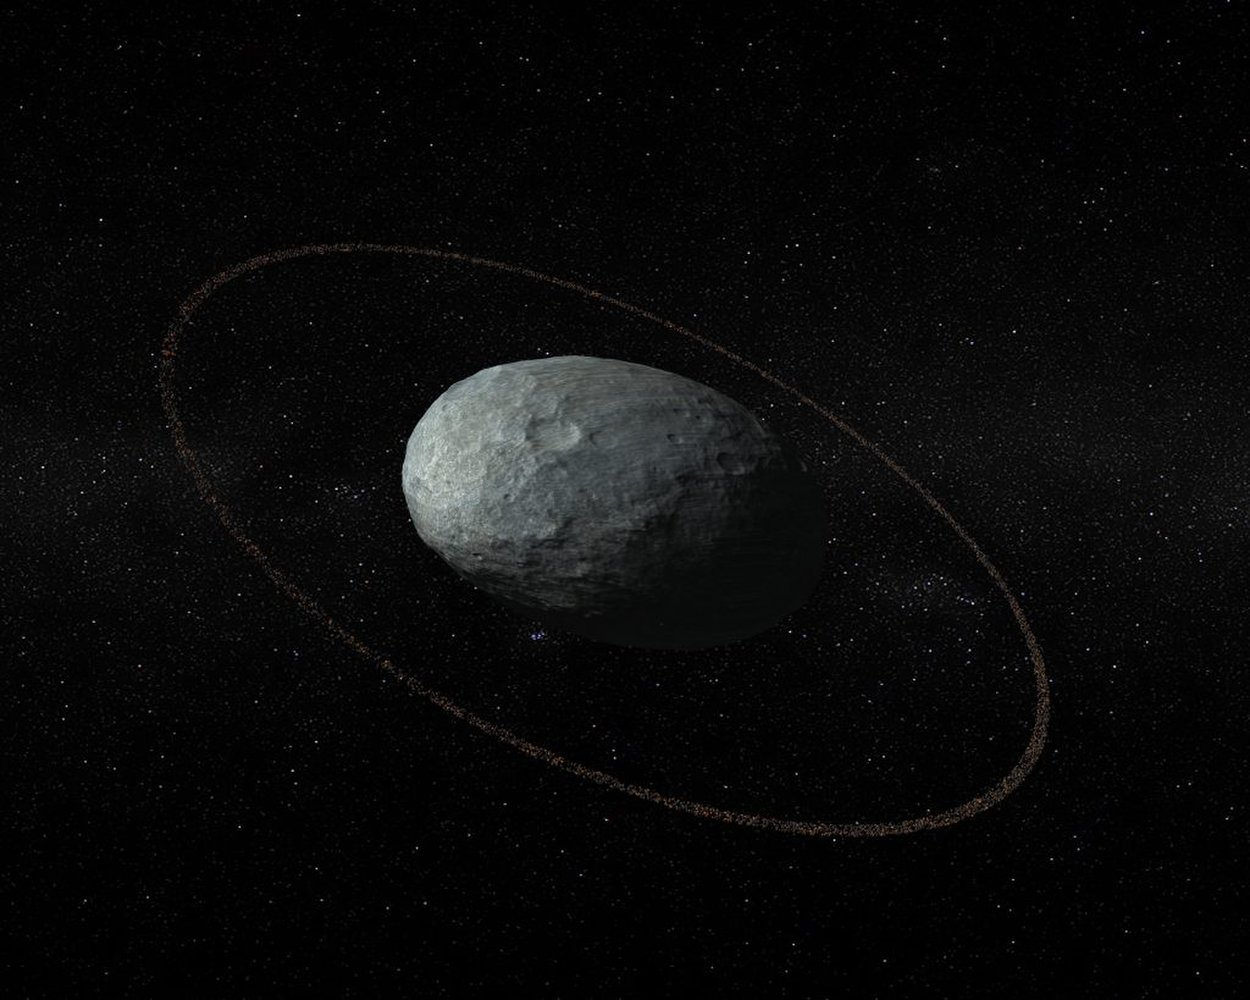 Surprise! Bizarre Dwarf Planet Haumea Has Rings https://t.co/VOGbry9Q0J https://t.co/O8eqHOChhQ